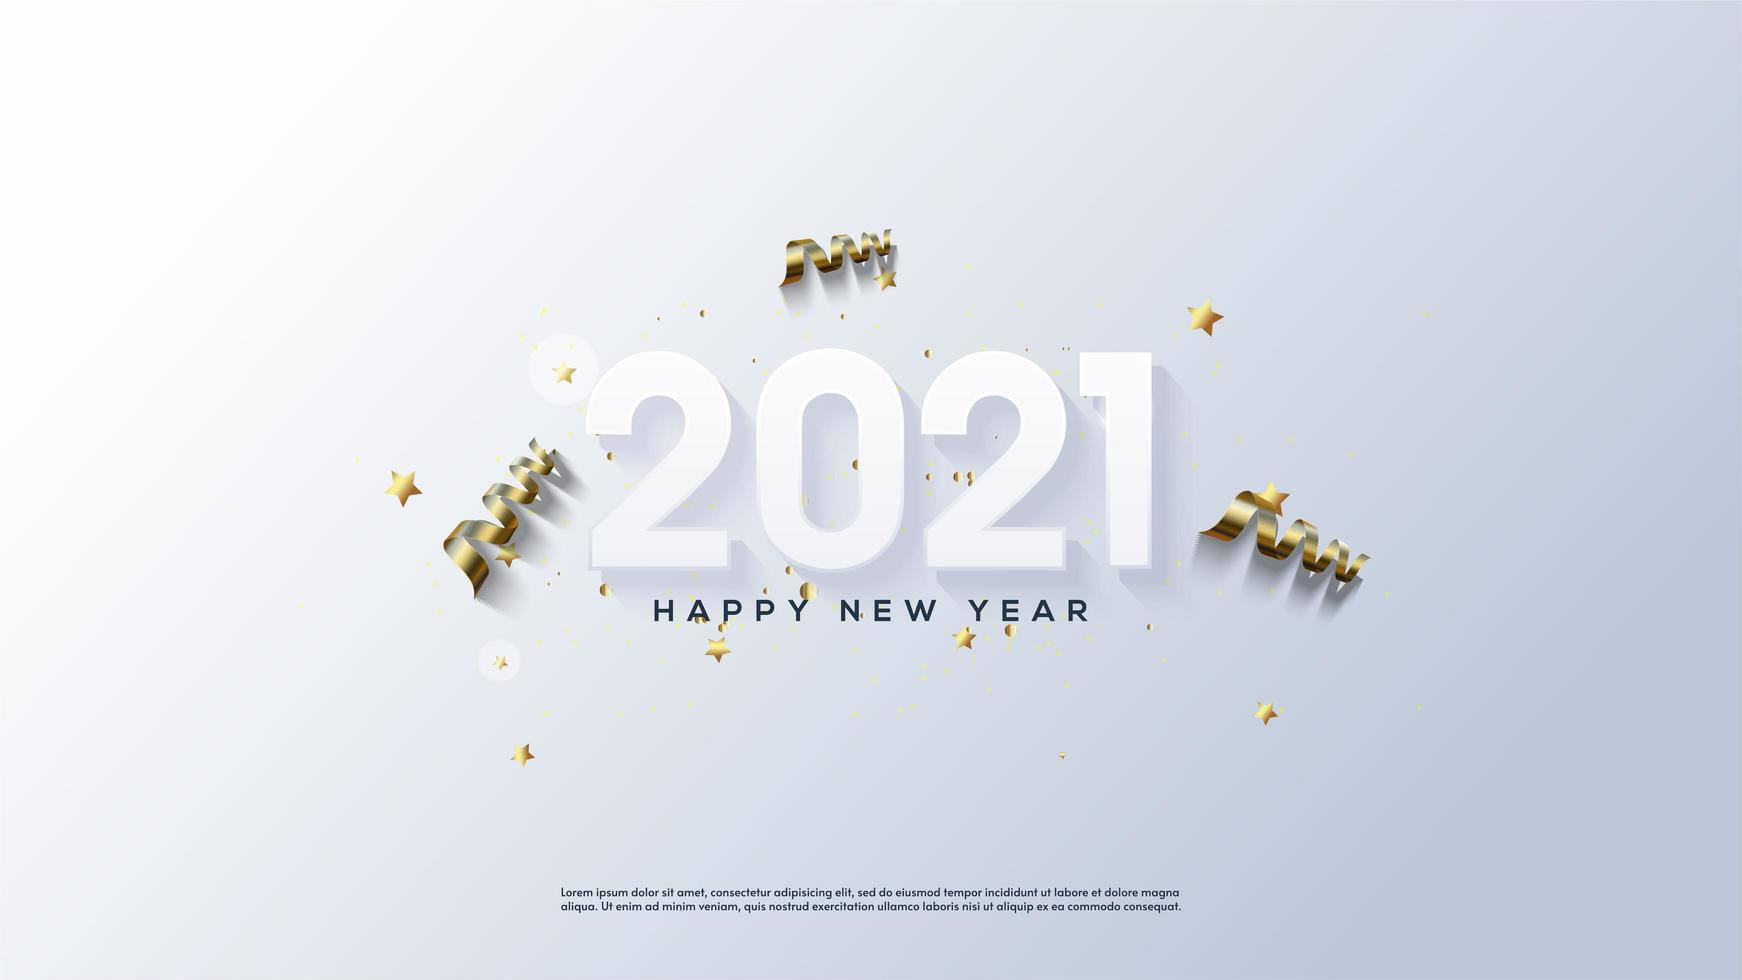 happy new year background 2021 with 3d numbers download free vectors clipart graphics vector art year background 2021 with 3d numbers